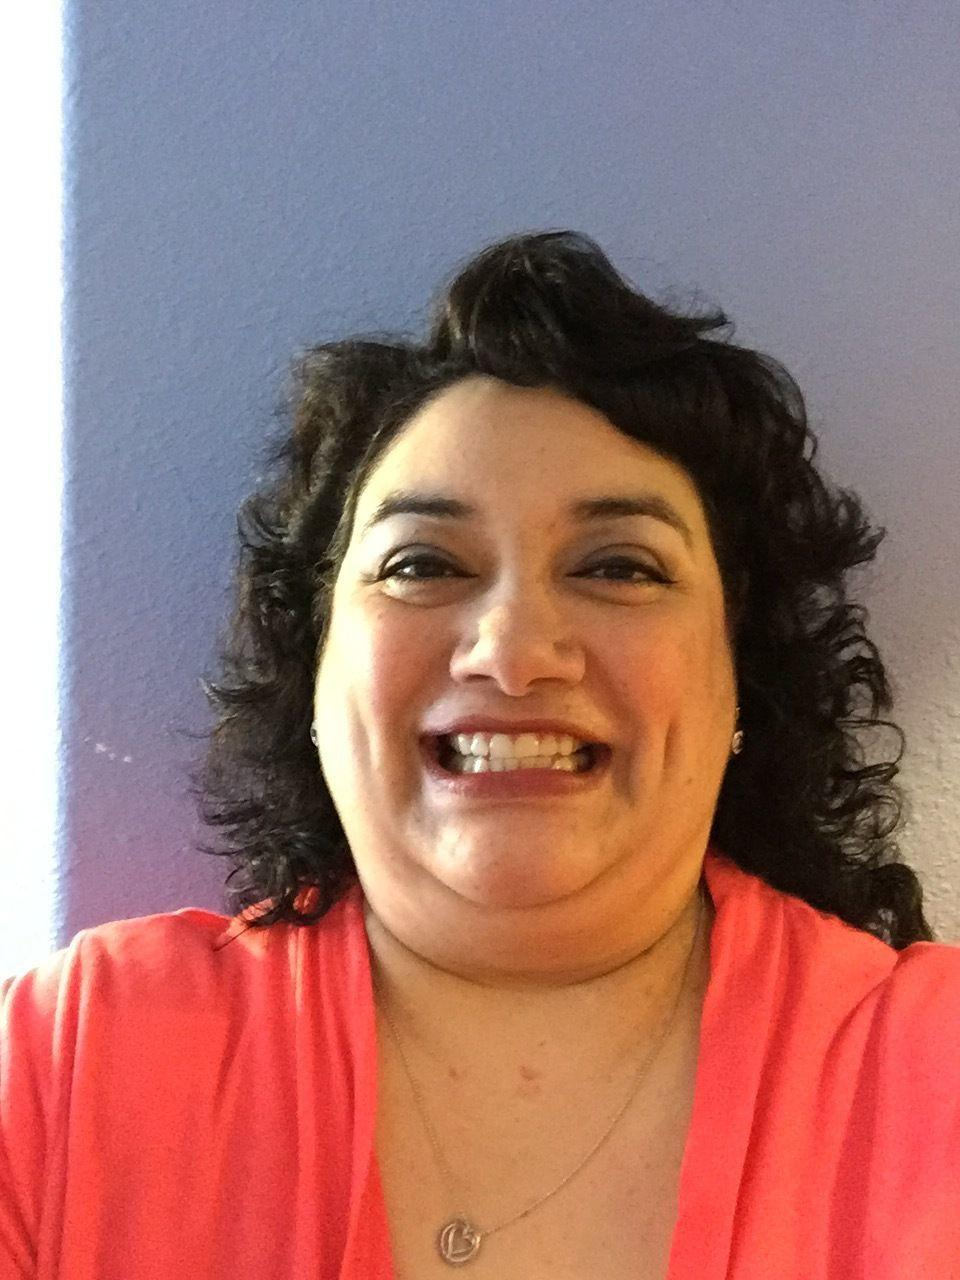 hanford latin singles Meet loads of available single women in hanford with mingle2's hanford dating   hanford mature women | hanford latin singles | hanford mature singles.